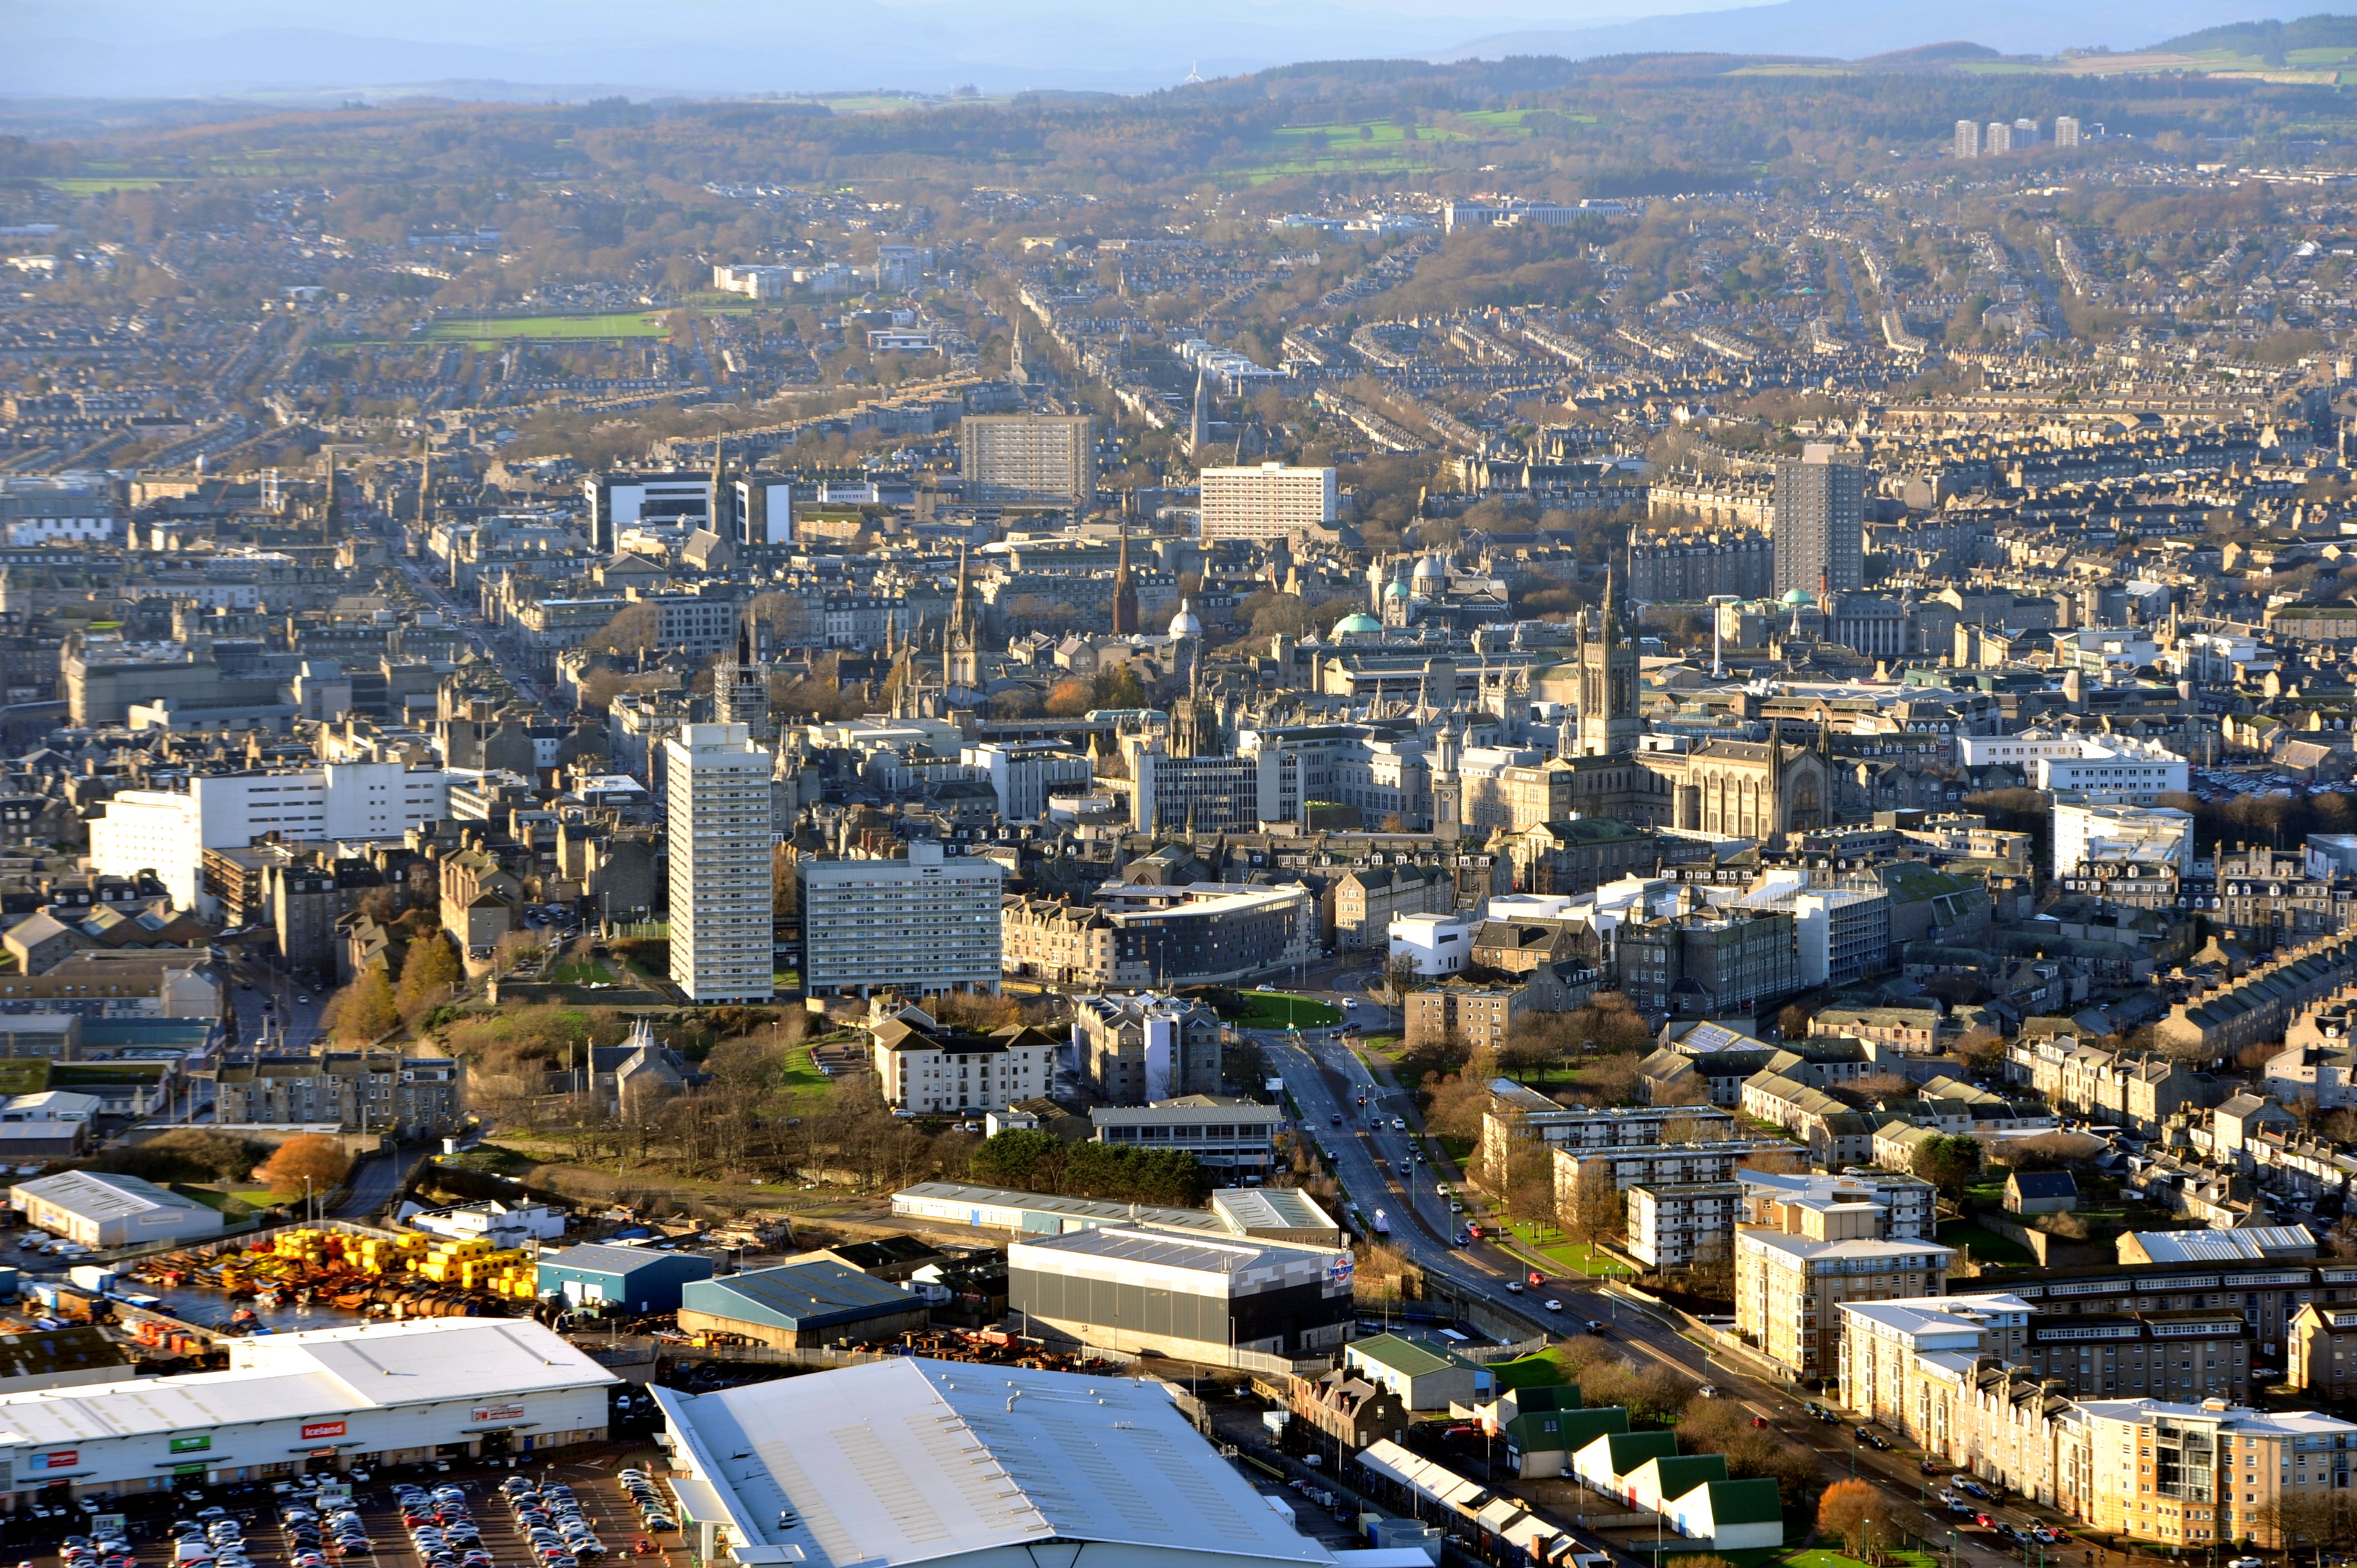 An aerial view of Aberden